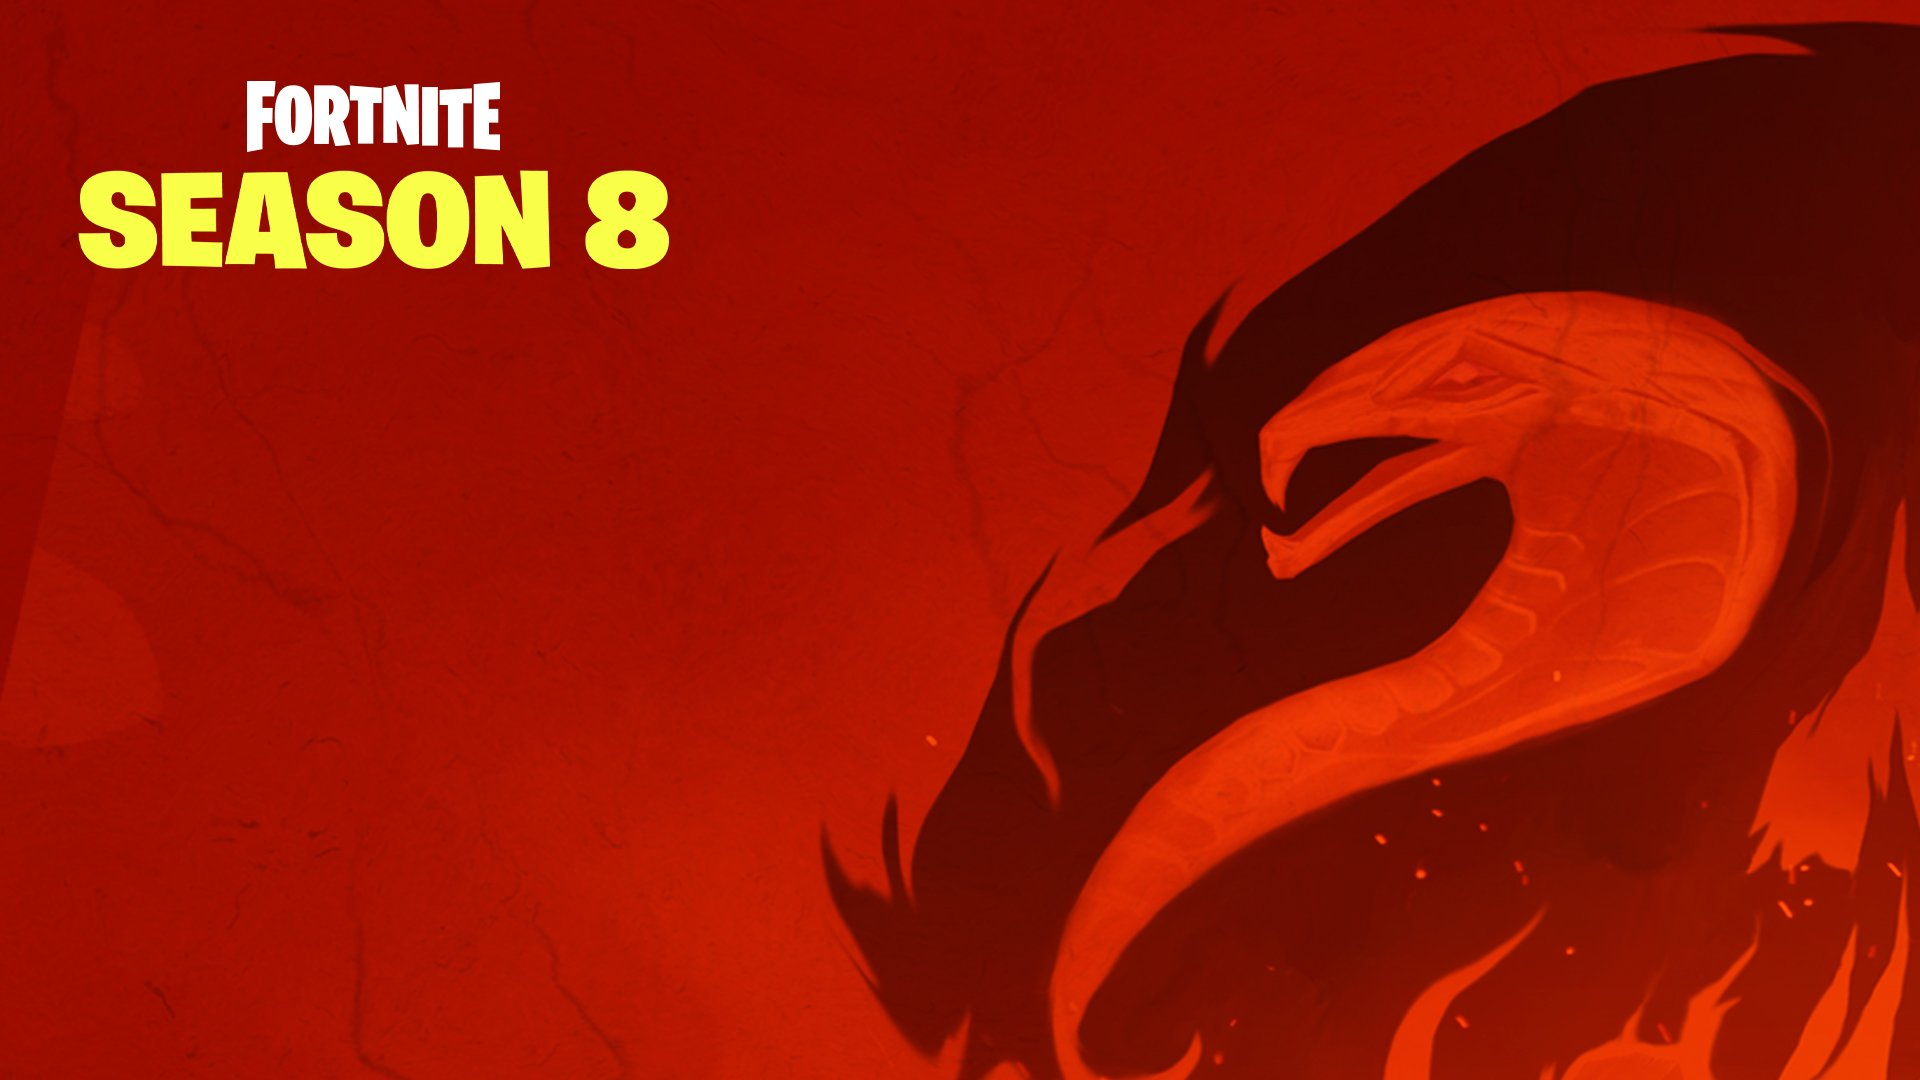 fortnite is a game that evolves via seasonal changes that is after a period of time epic releases new game seasons with new battle pass tiers and major - where should we drop in fortnite season 8